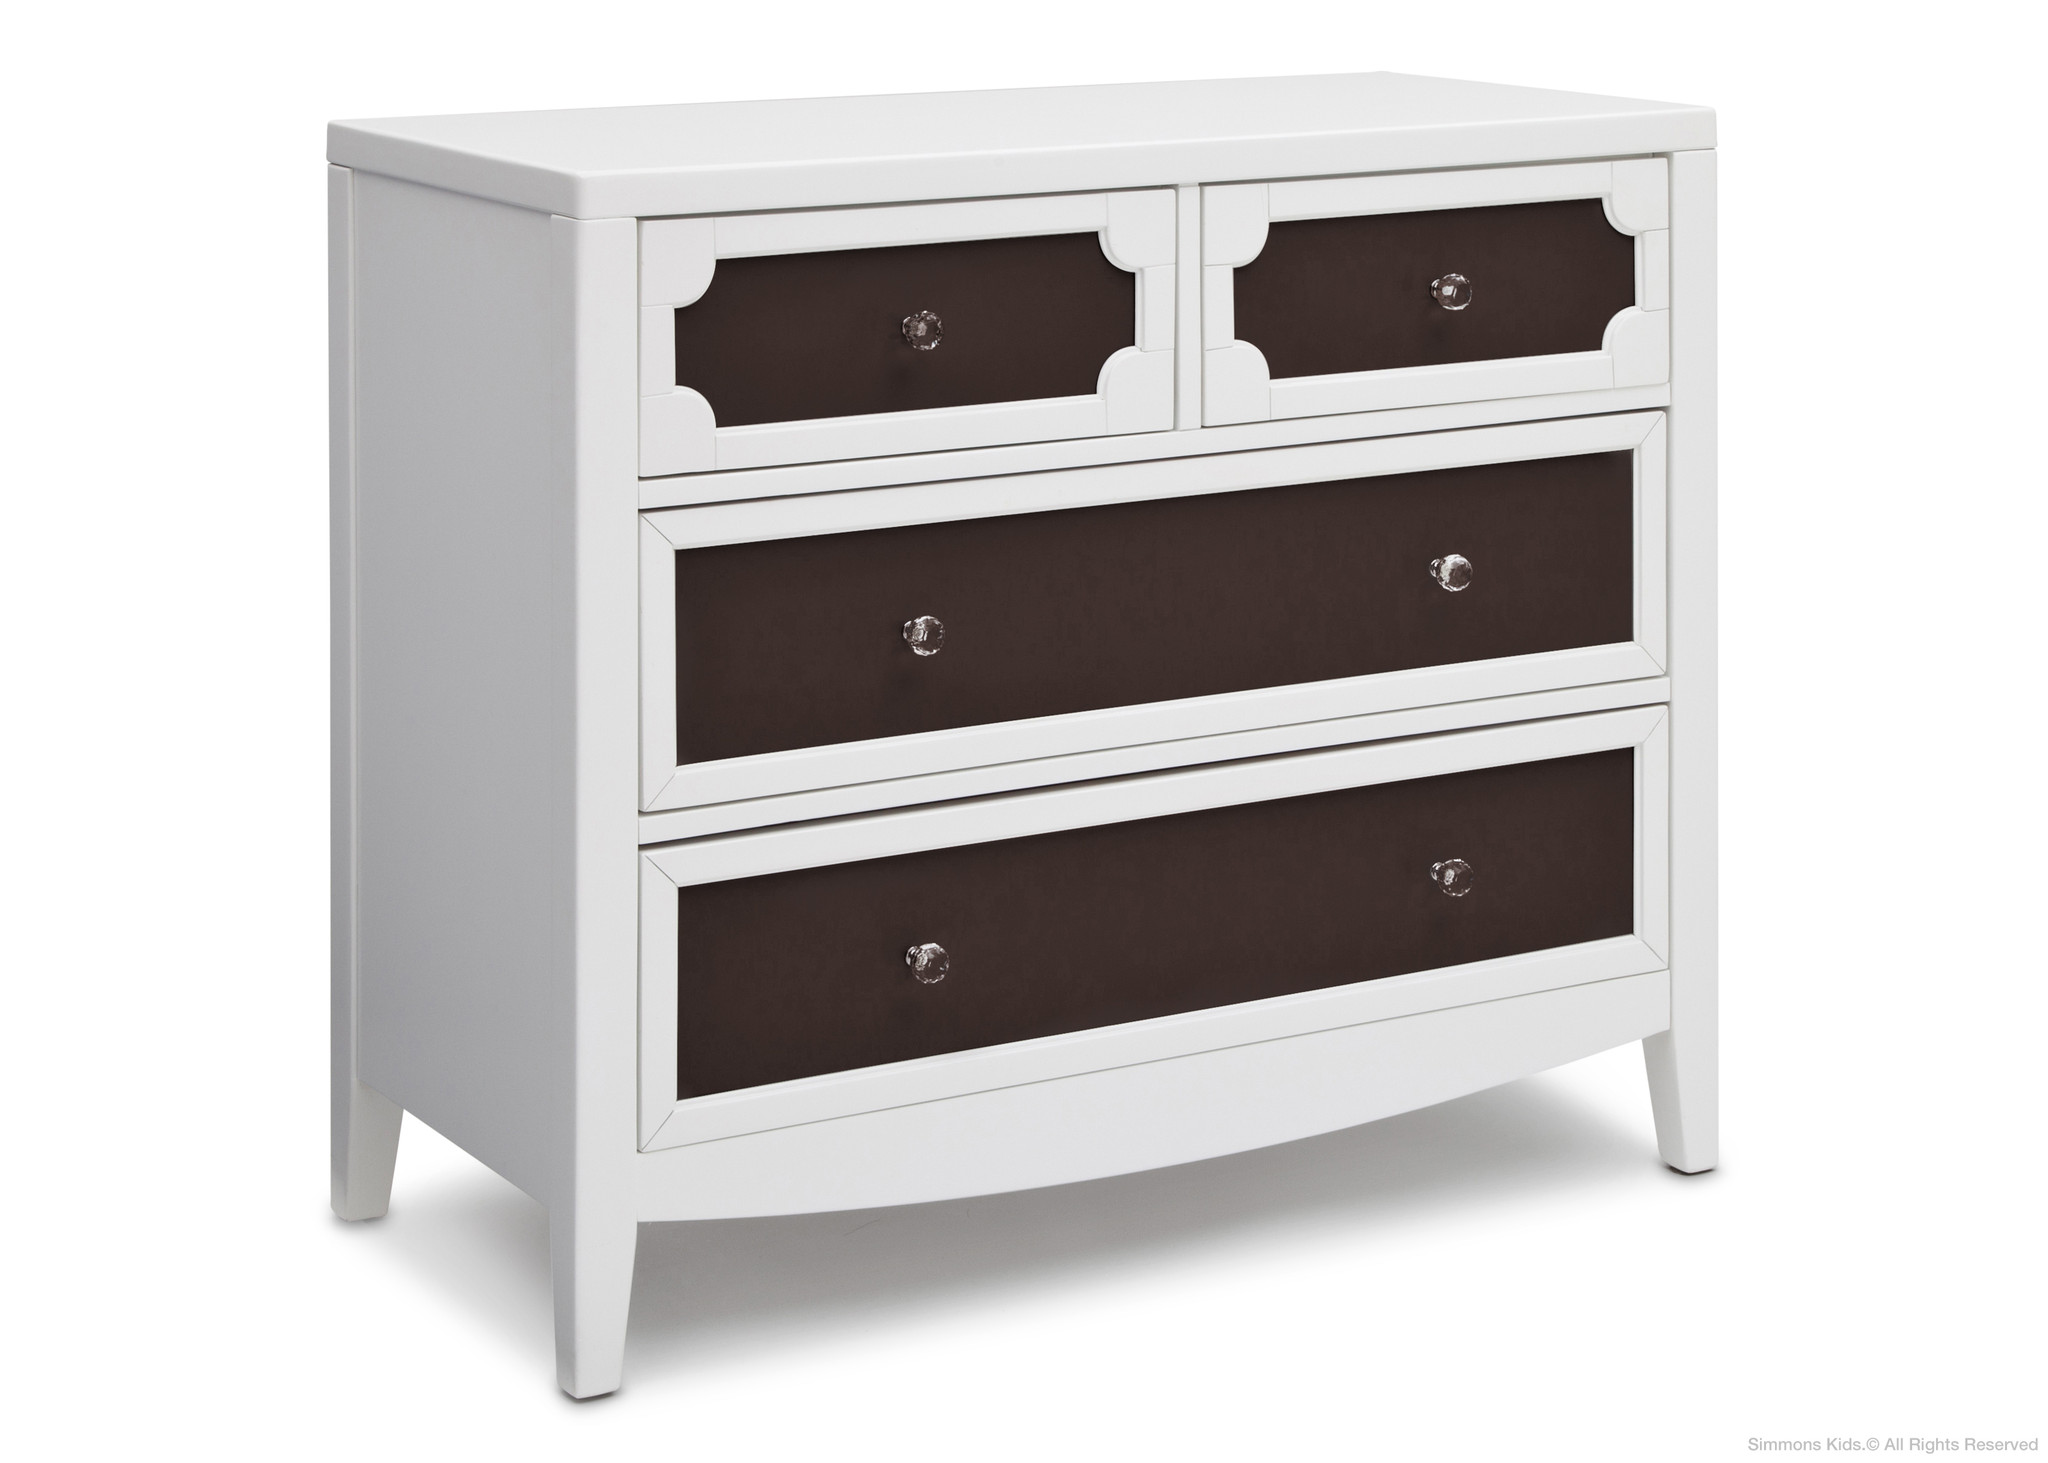 Unique Furniture Design Cabinet with 4 Drawer Dresser for Bedroom Ideas: Brown And White Of 4 Drawer Dresser Color